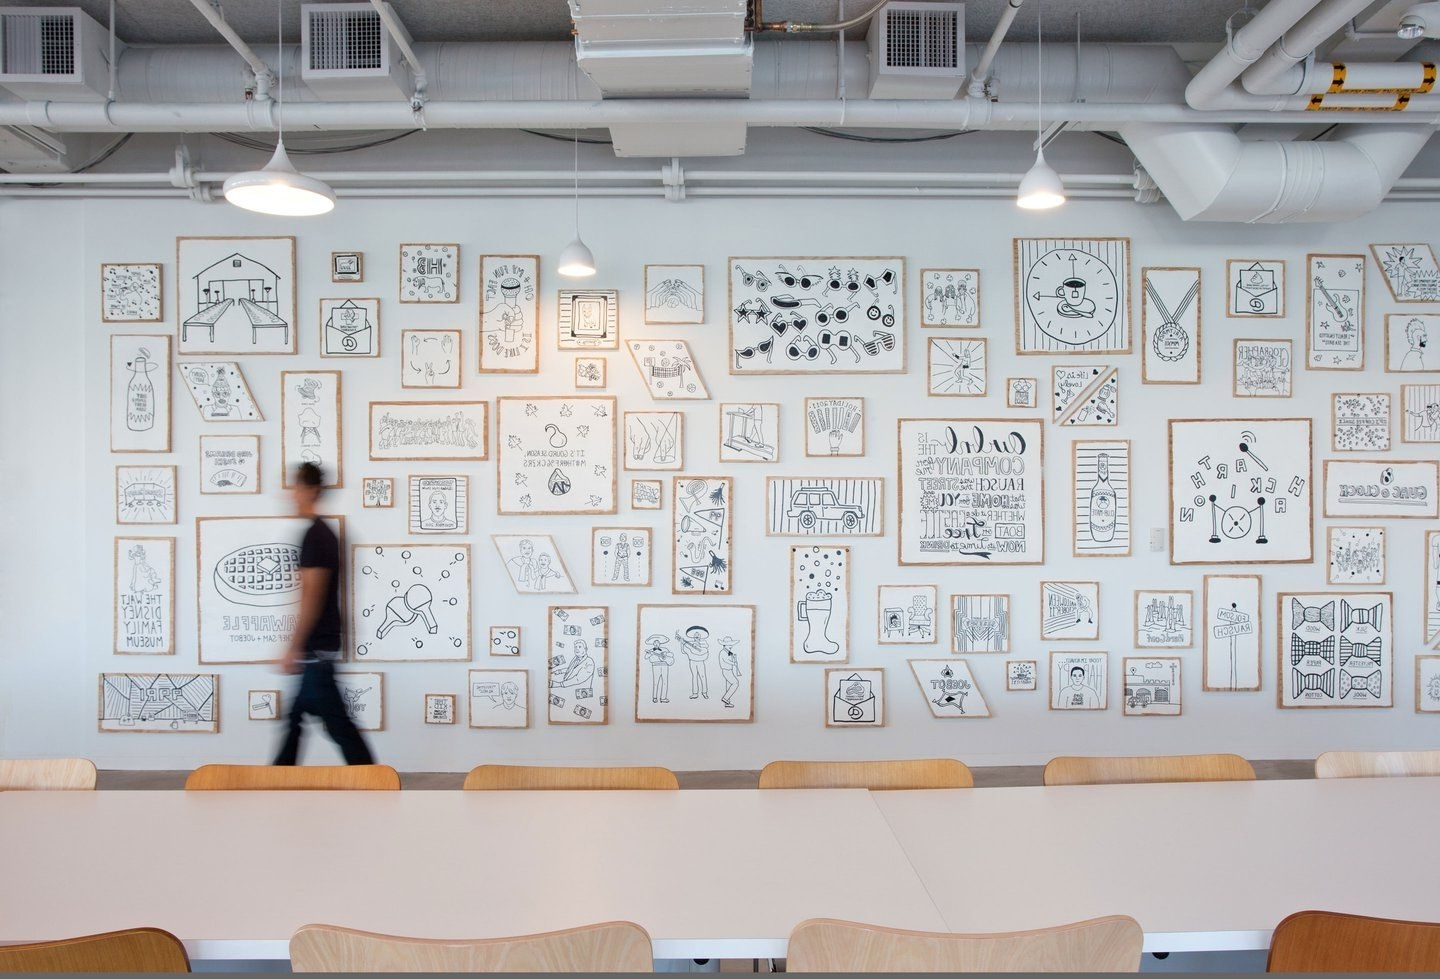 Wall Ideas Pertaining To Wall Art For Office Space (View 15 of 15)